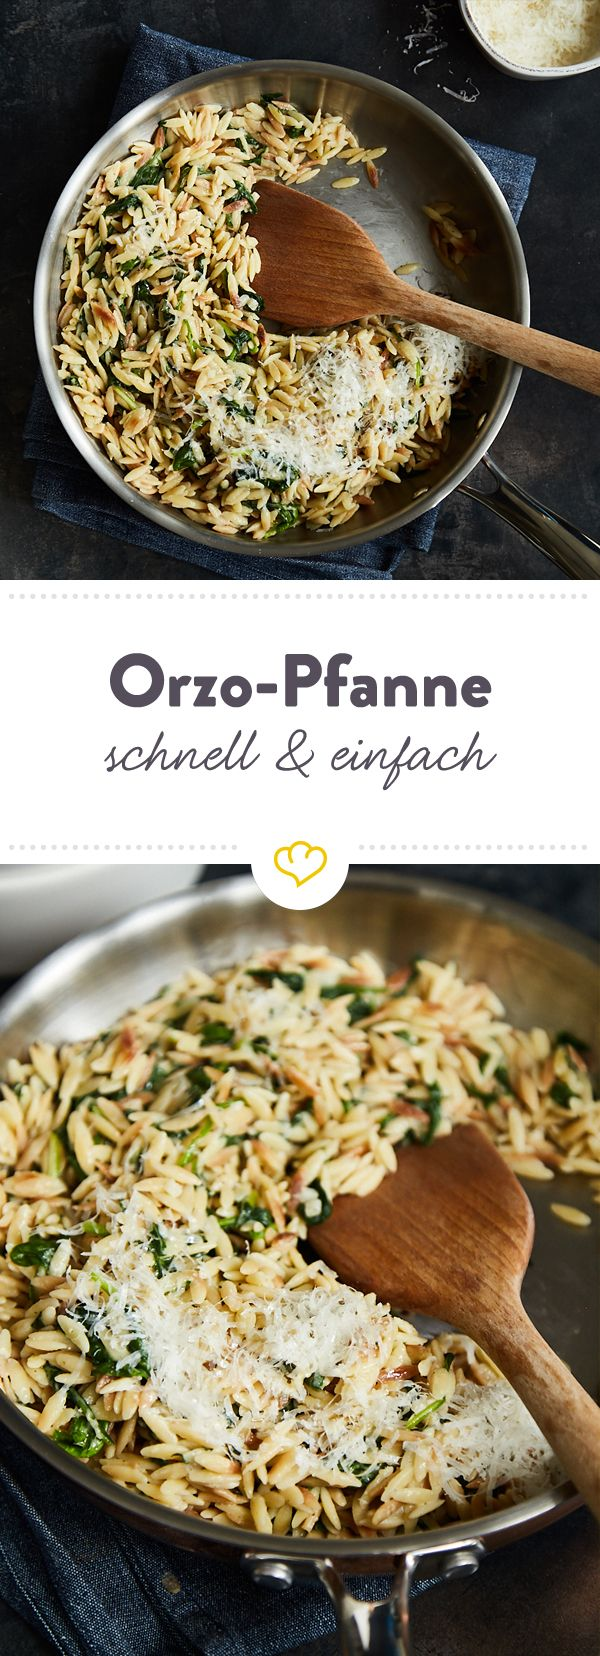 Photo of Quick orzo spinach pan